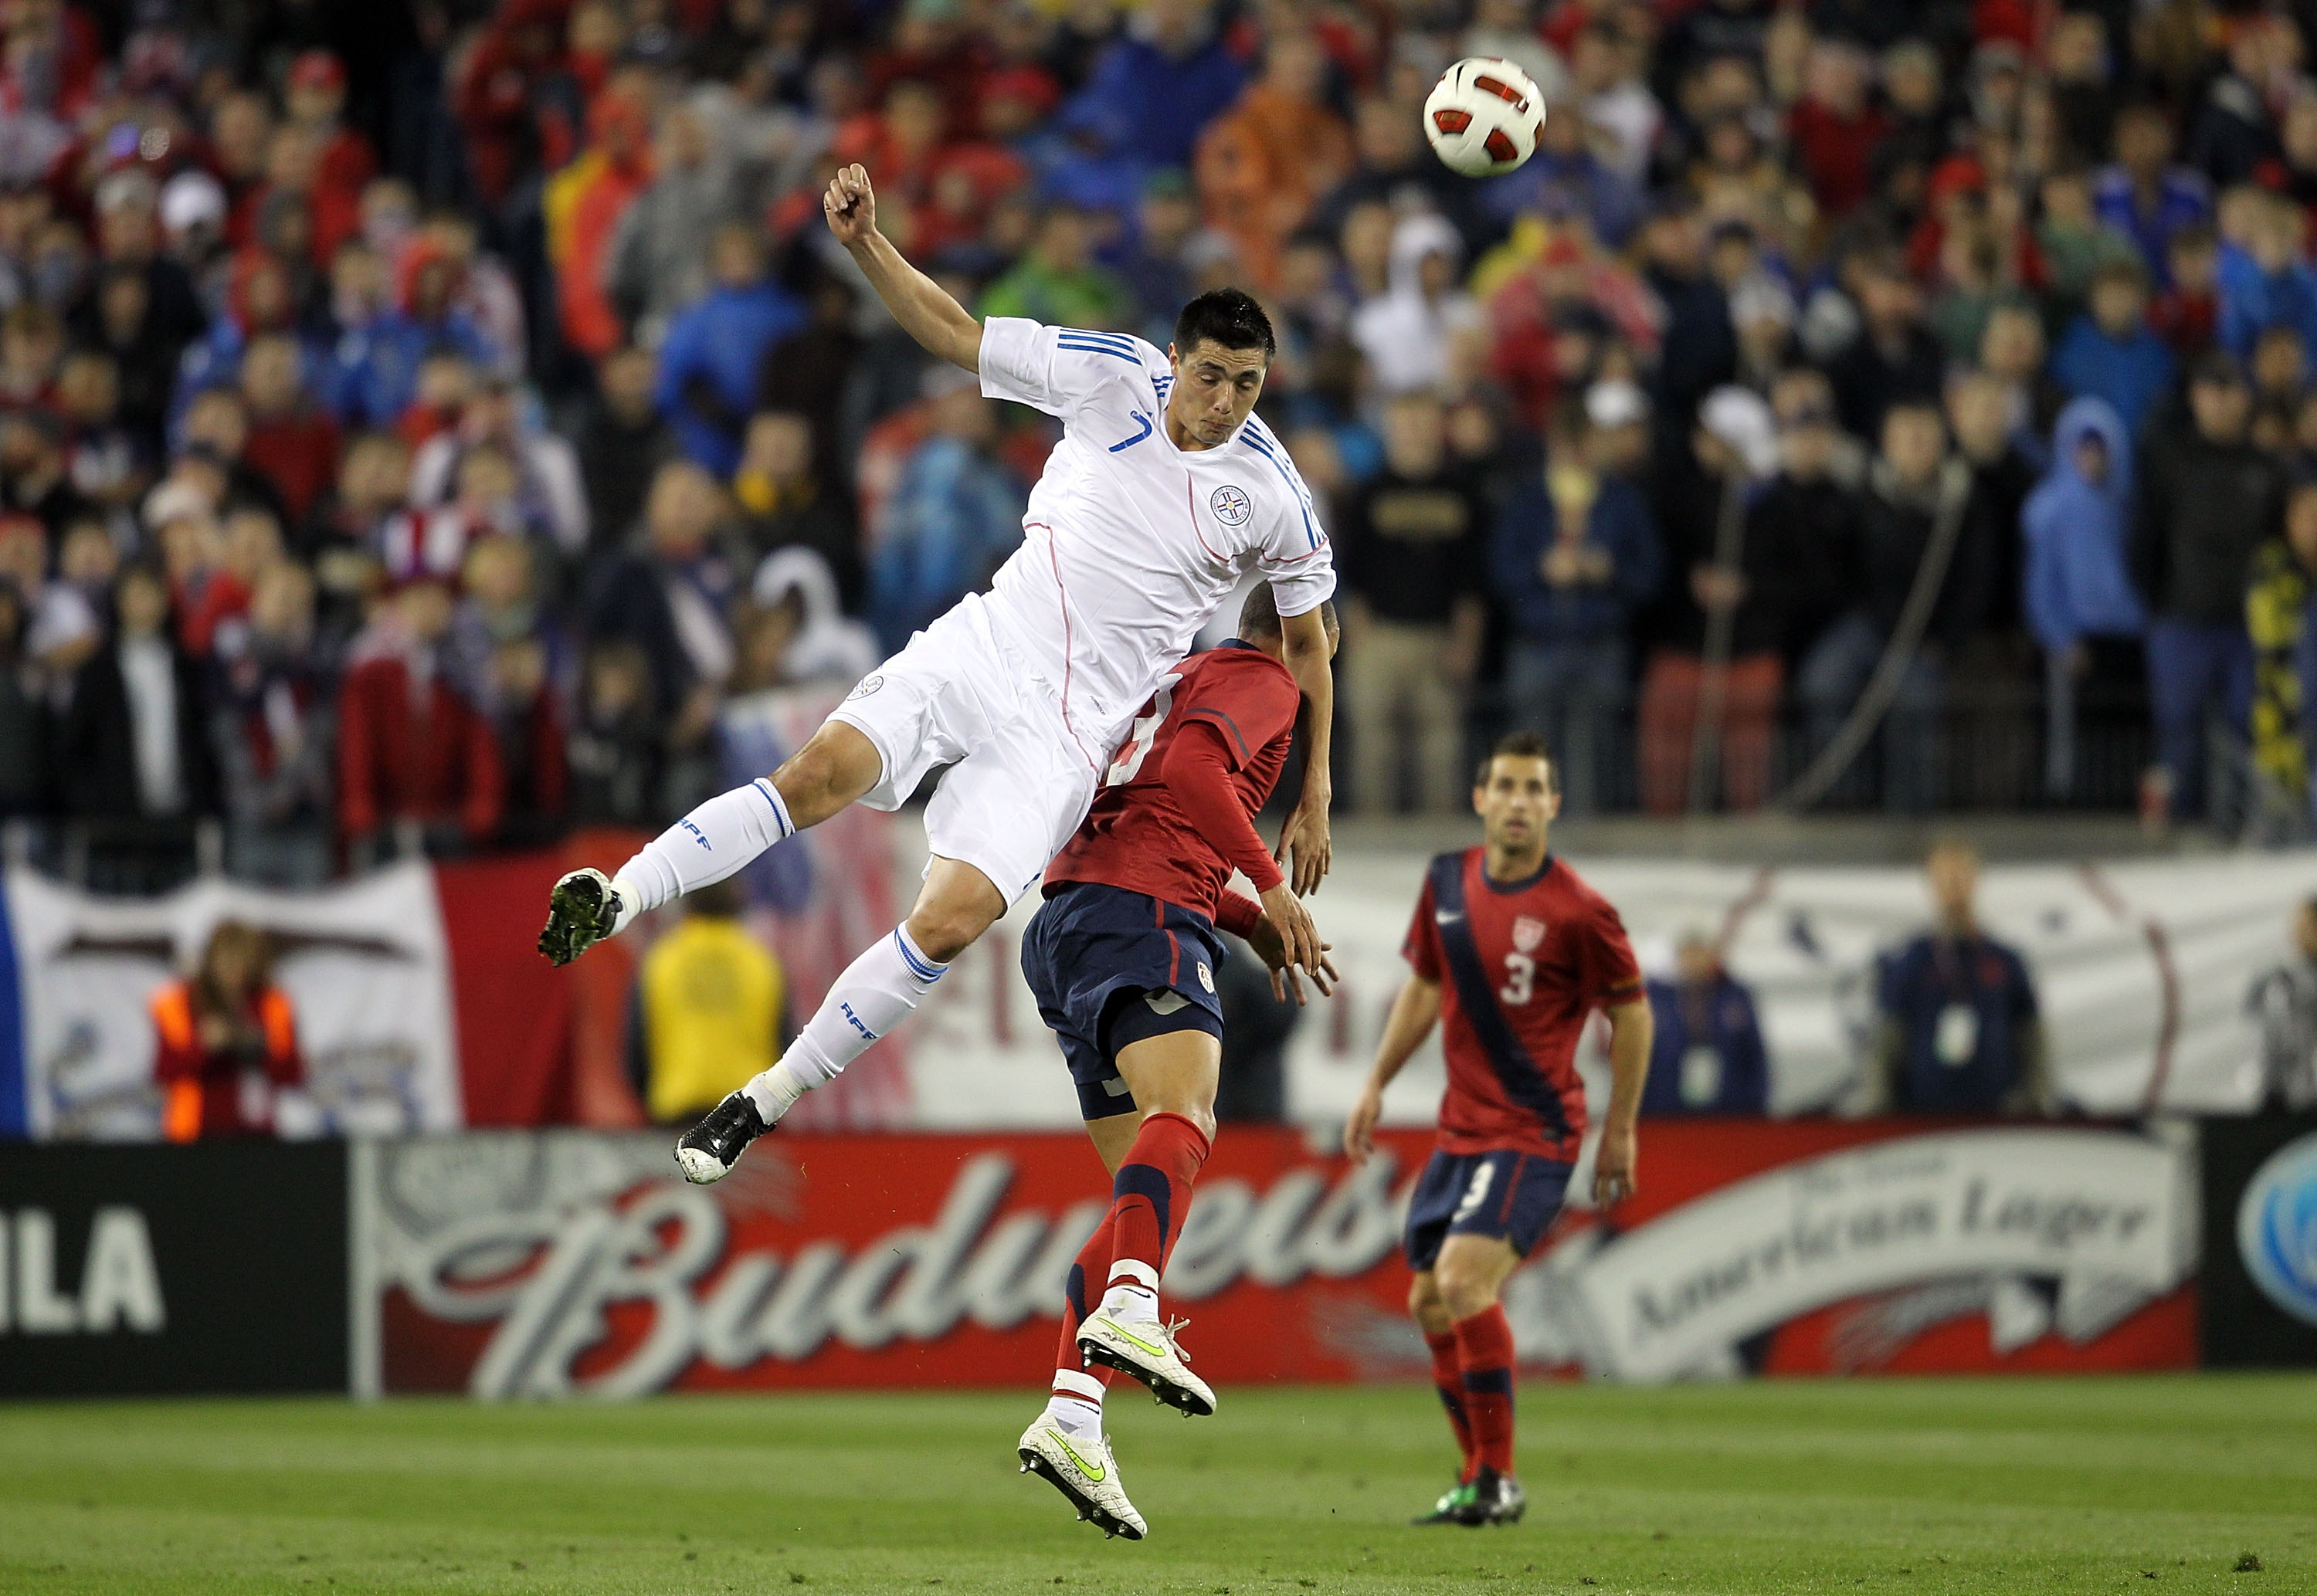 NASHVILLE, TN - MARCH 29: Jermaine Jones #13 of the United States and Oscar Cardozo#7 of Paraguay battle for the ball during an international friendly match at LP Field on March 29, 2011 in Nashville, Tennessee.  (Photo by Andy Lyons/Getty Images)